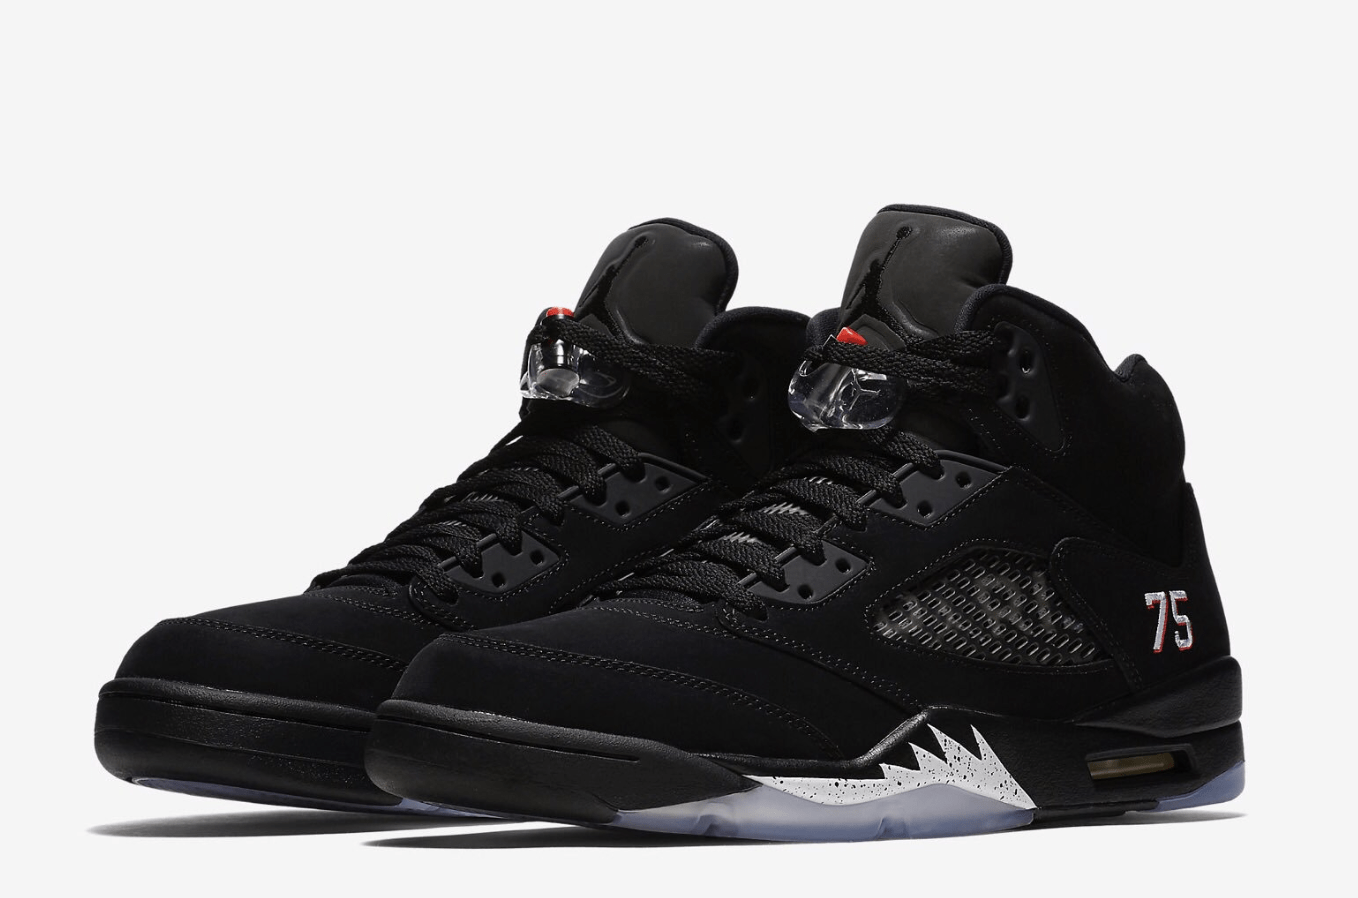 The Air Jordan 5 is one of the most popular silhouettes from Jordan Brand. With so many recent retros of other fan-favorite Jordans, collectors of the 5 are ...